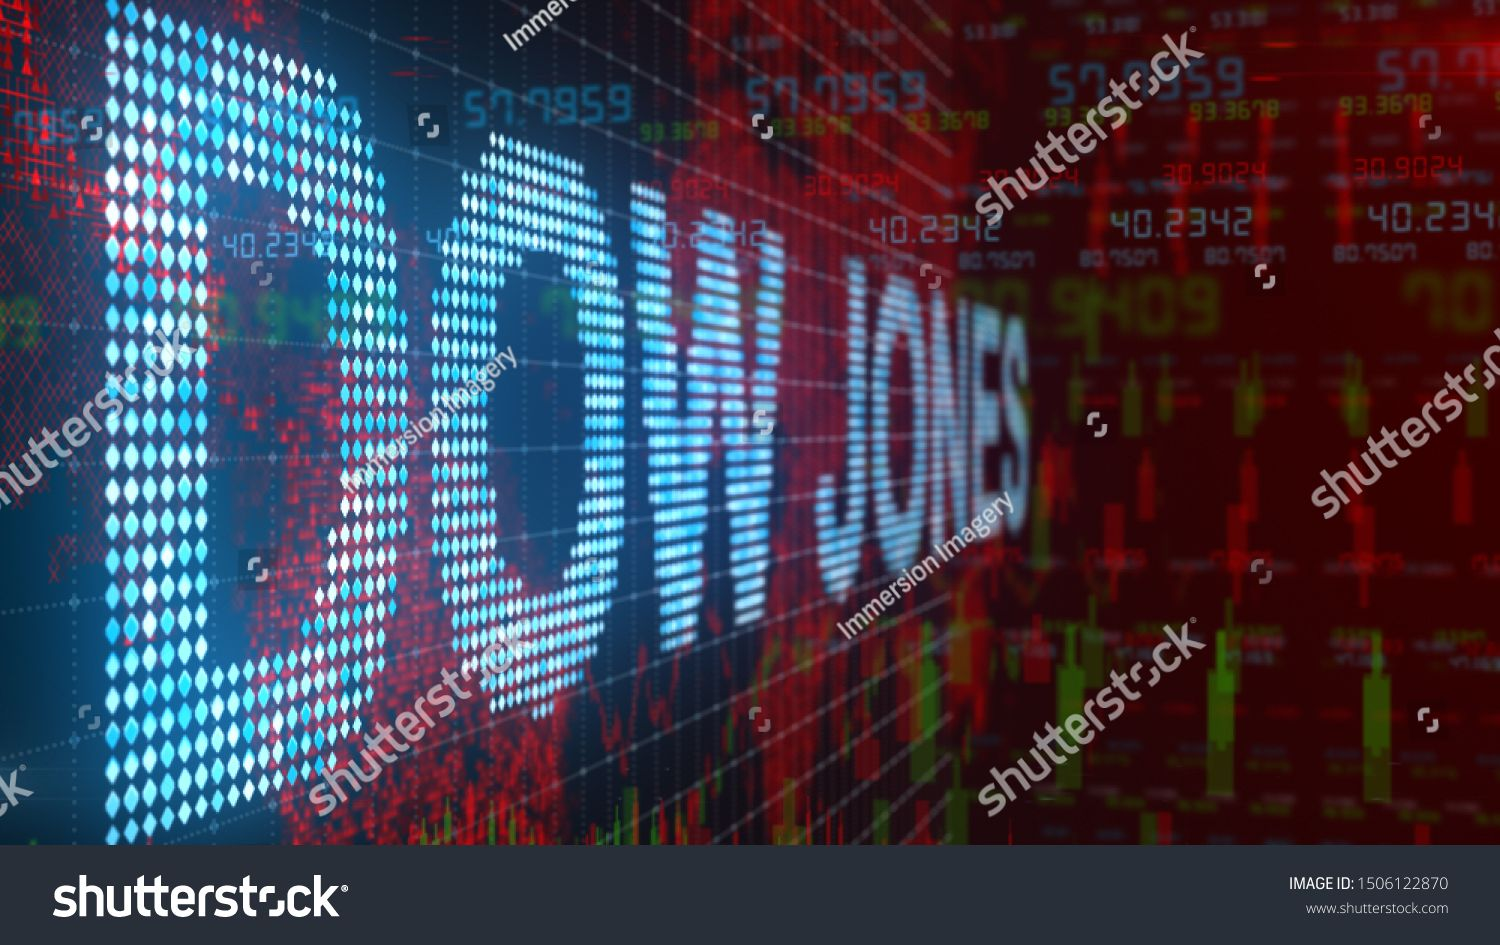 New York Usa September 2019 Dow Jones Industrial Average Stock Market Index Title Motion Graphic Conc In 2020 Dow Dow Jones Industrial Average Image Illustration